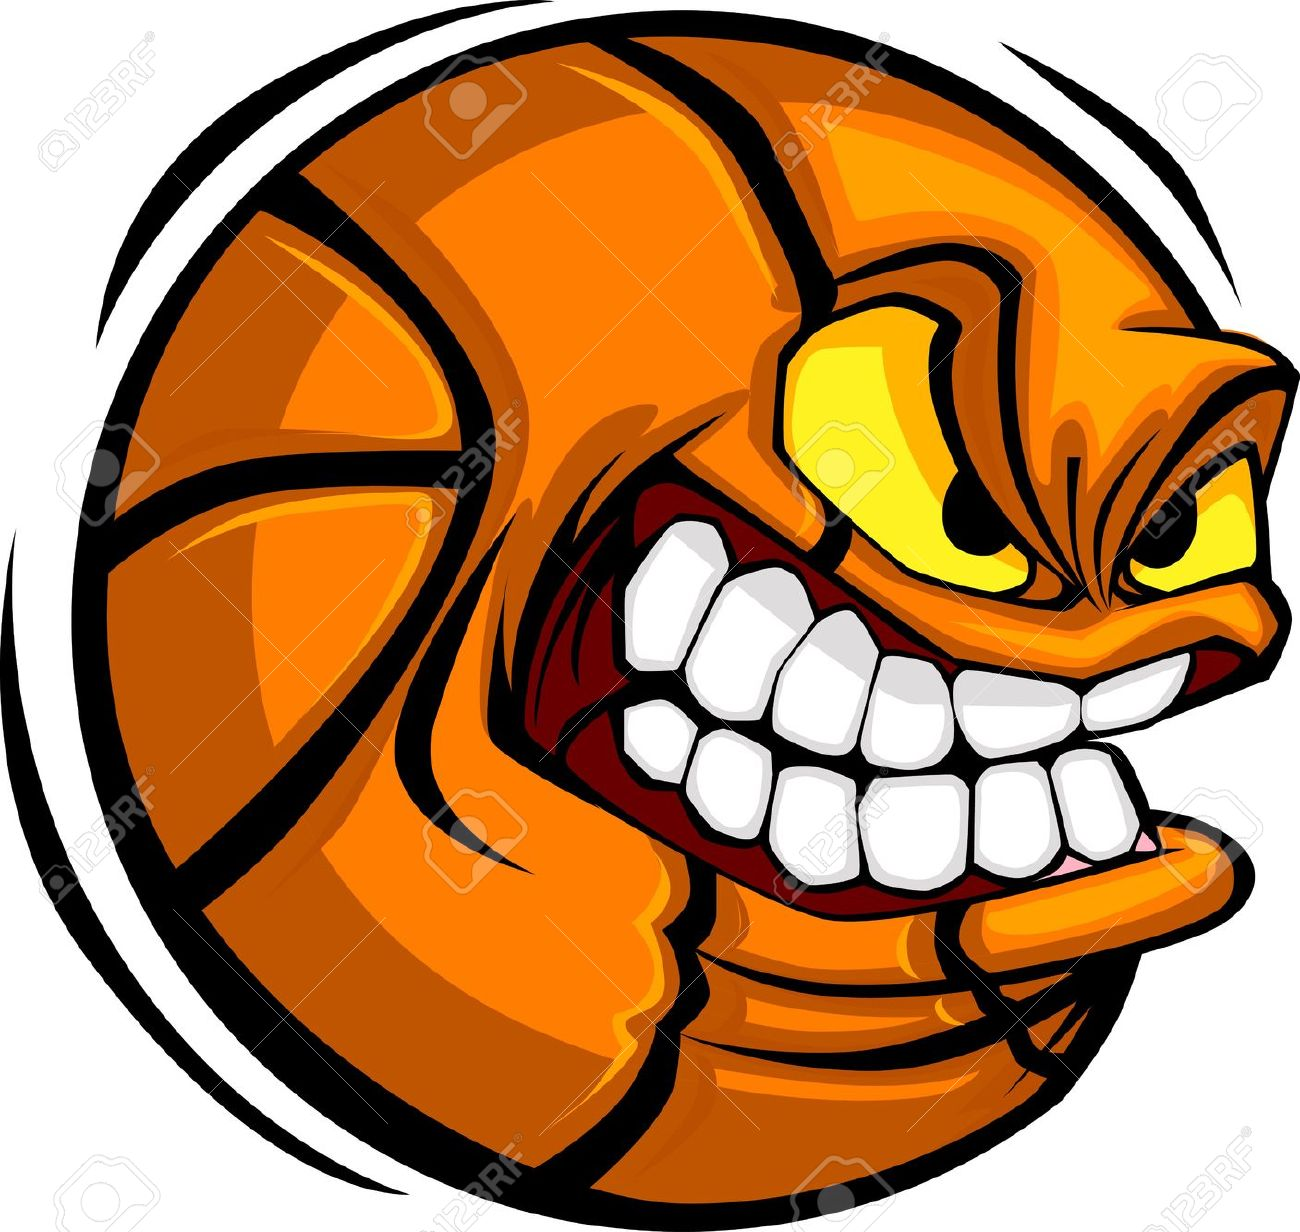 1300x1232 Basketball Manager Clipart Amp Basketball Manager Clip Art Images